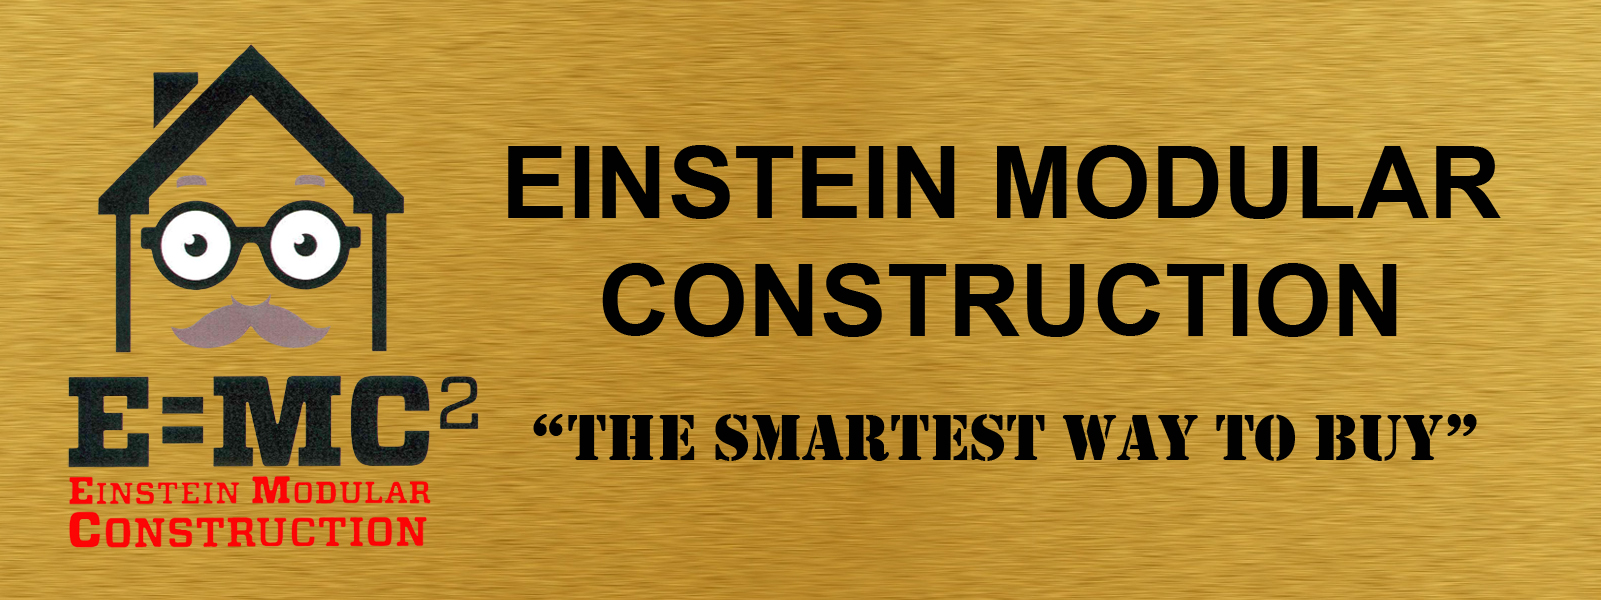 Einstein Modular Constuction